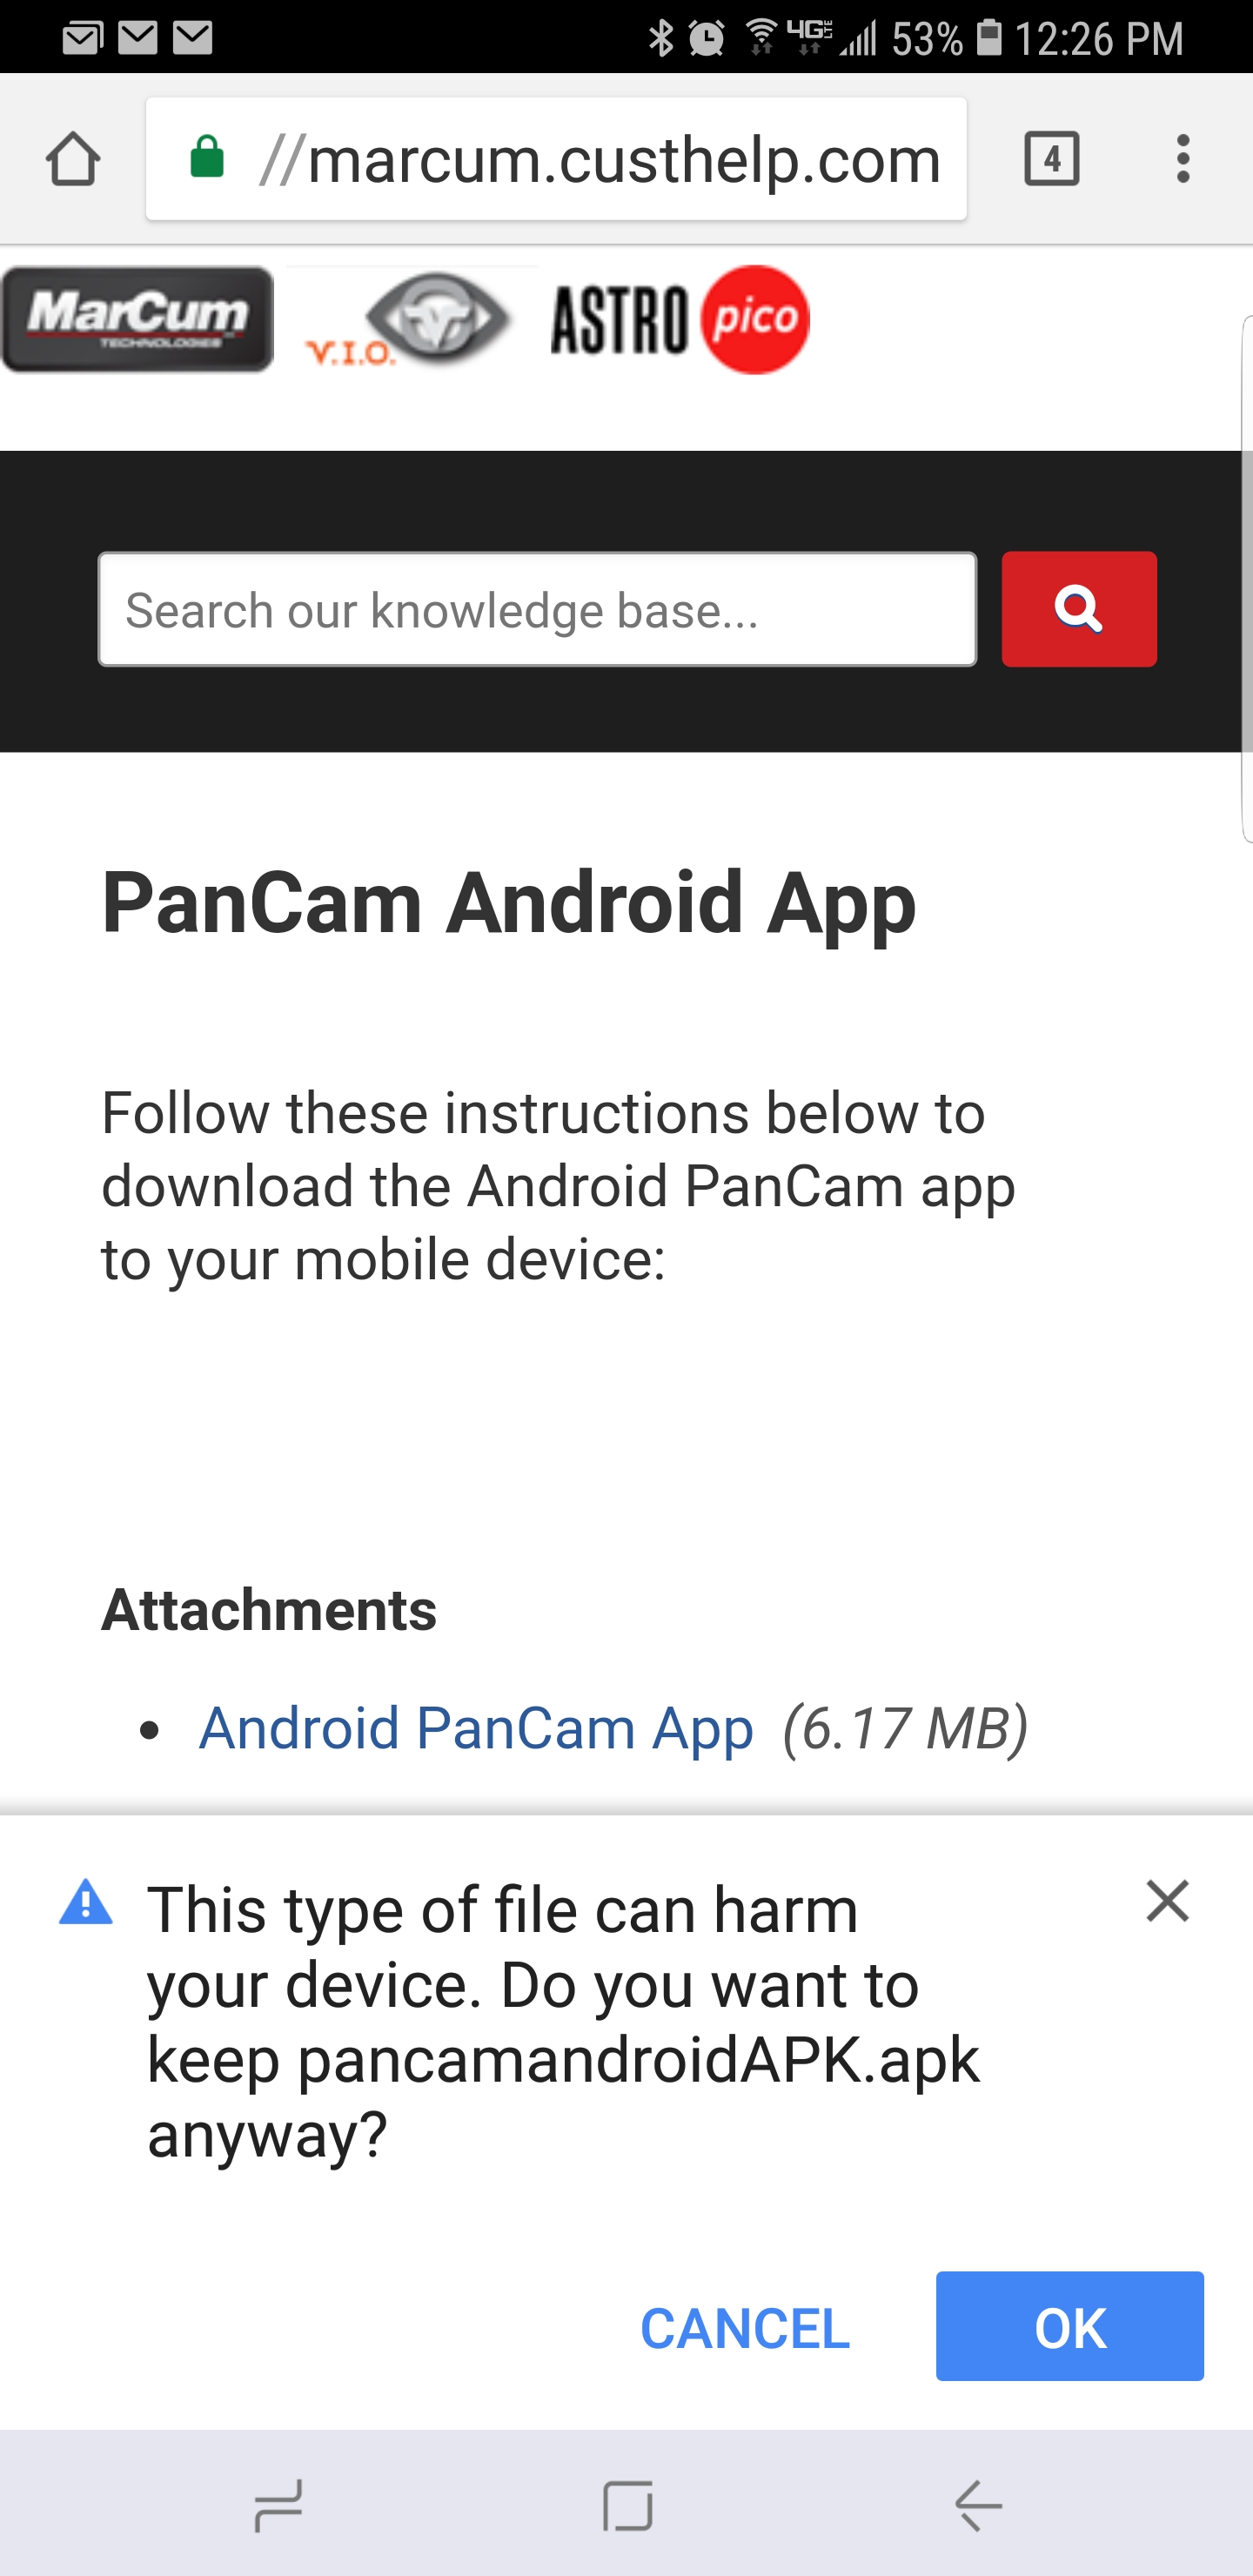 PanCam Android App